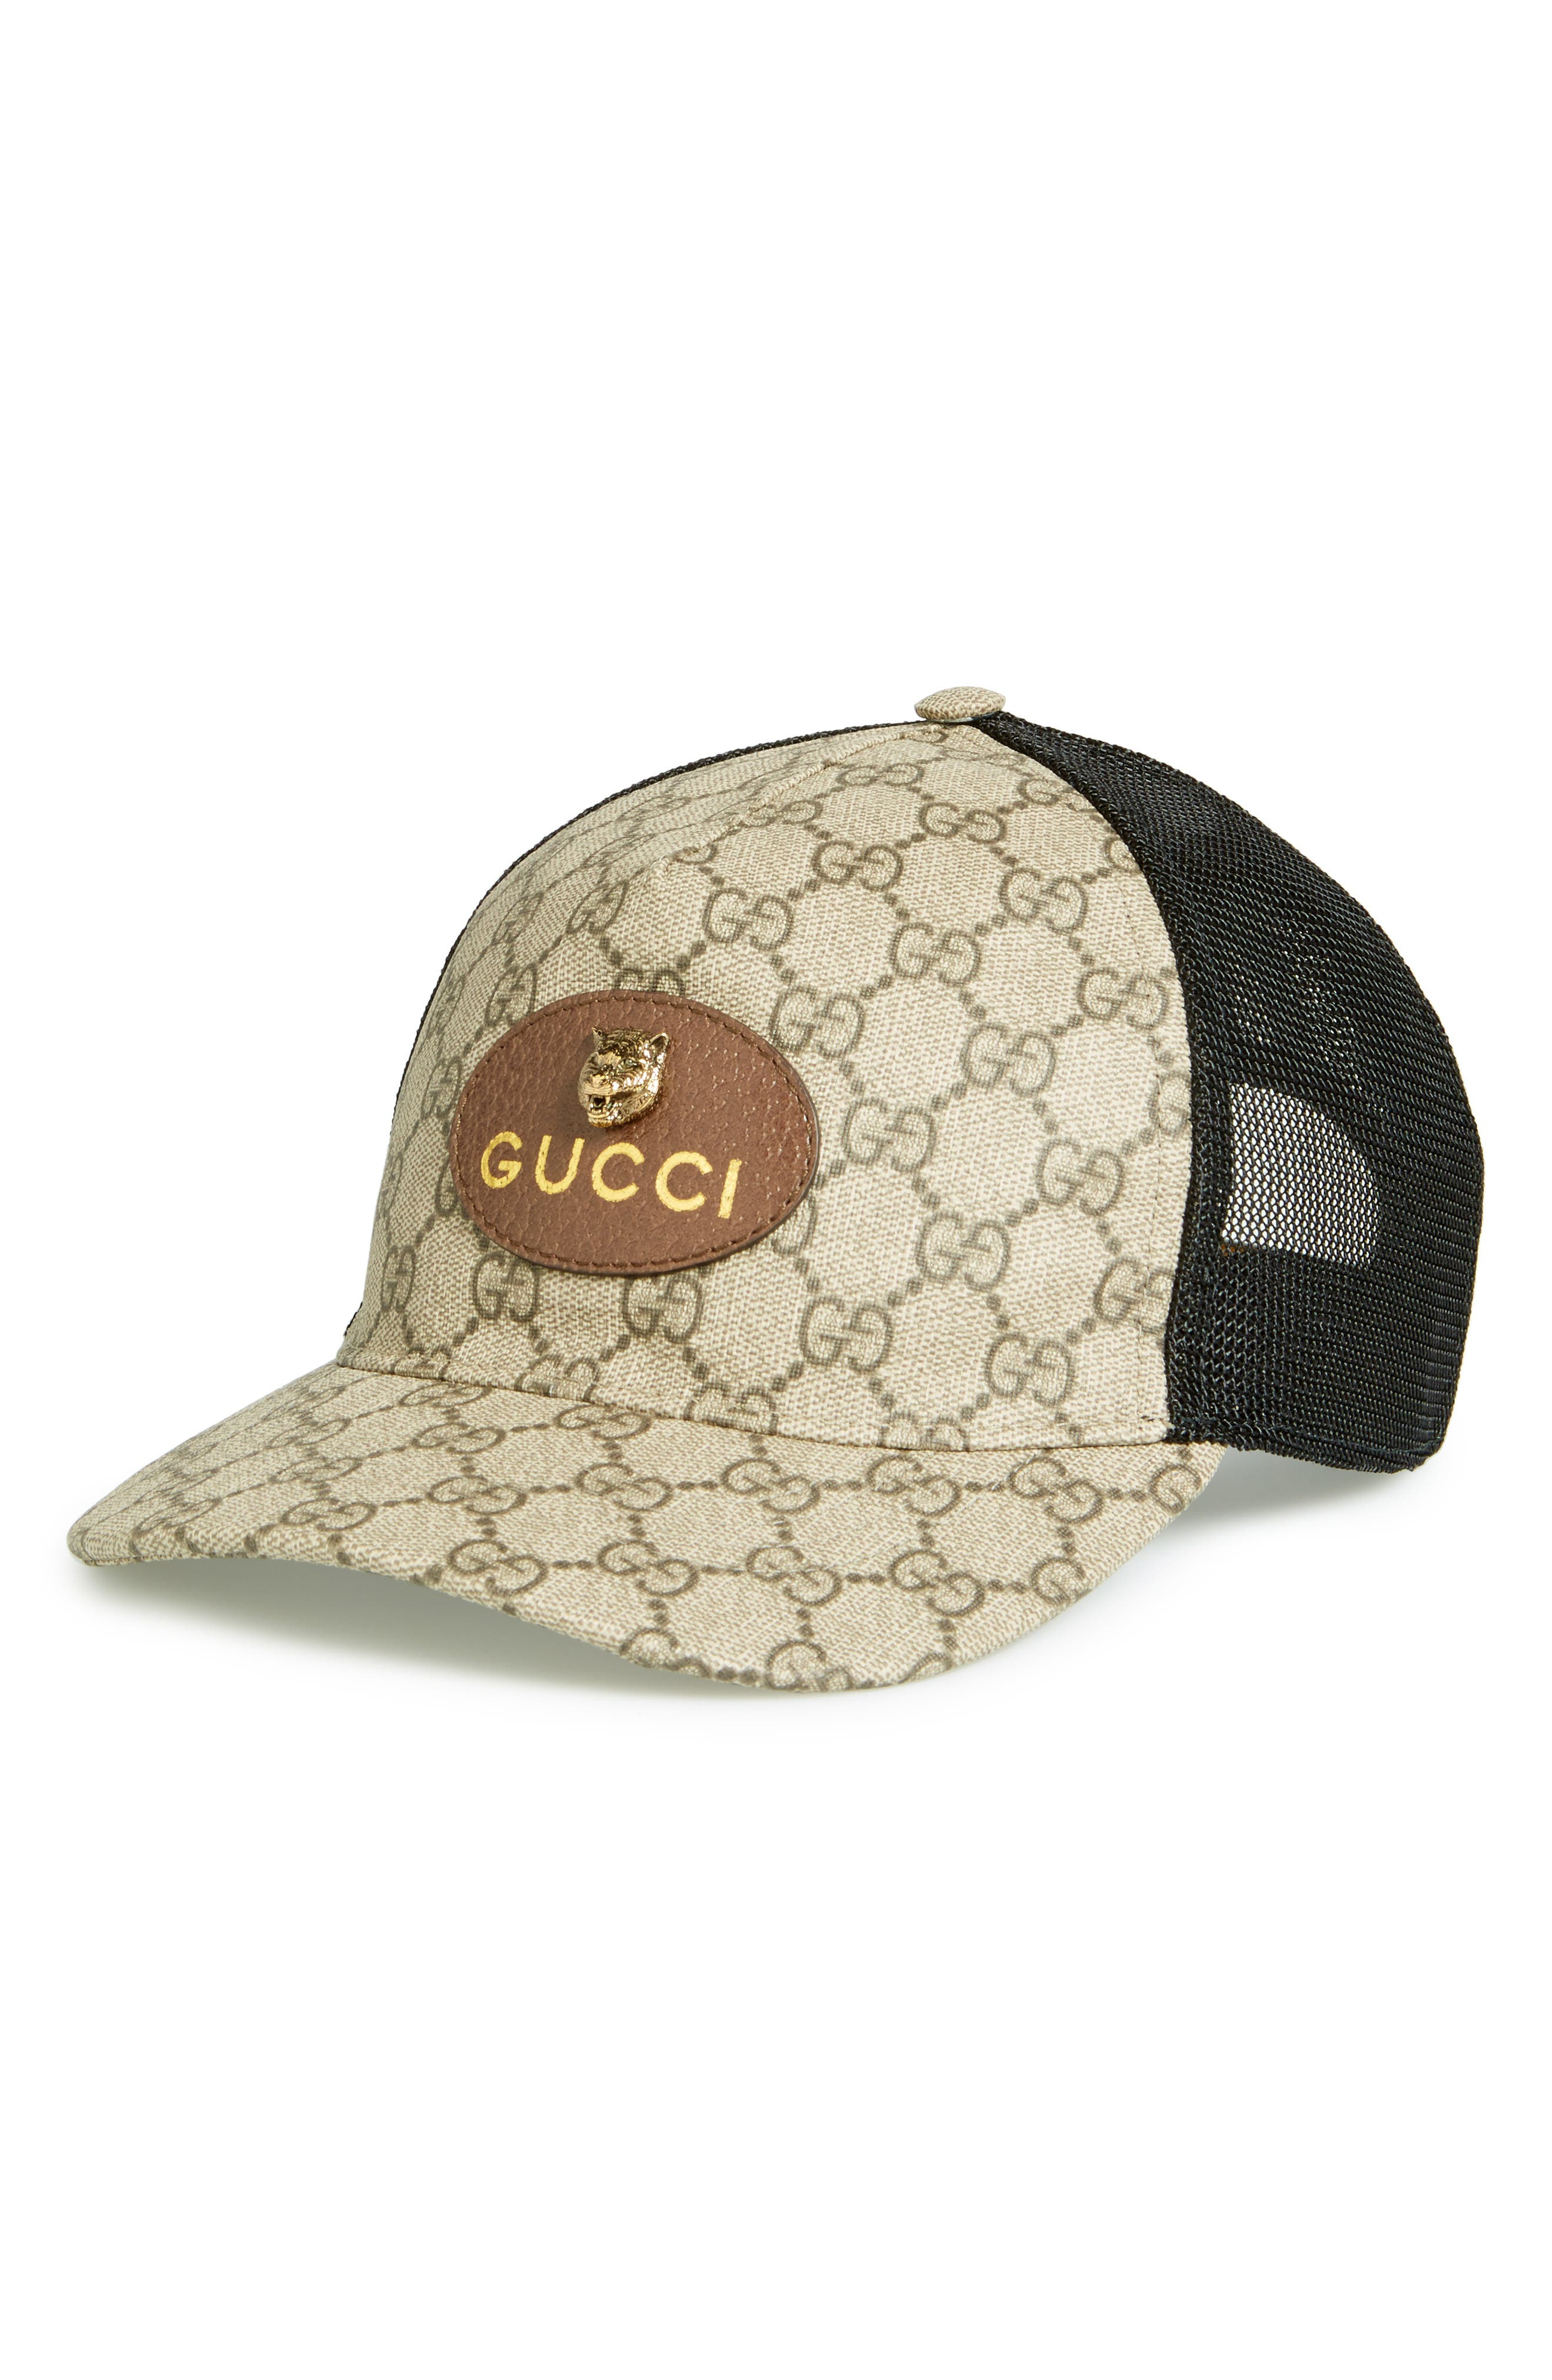 GG Supreme Patch Trucker Hat,                             Main thumbnail 1, color,                             Dark Brown